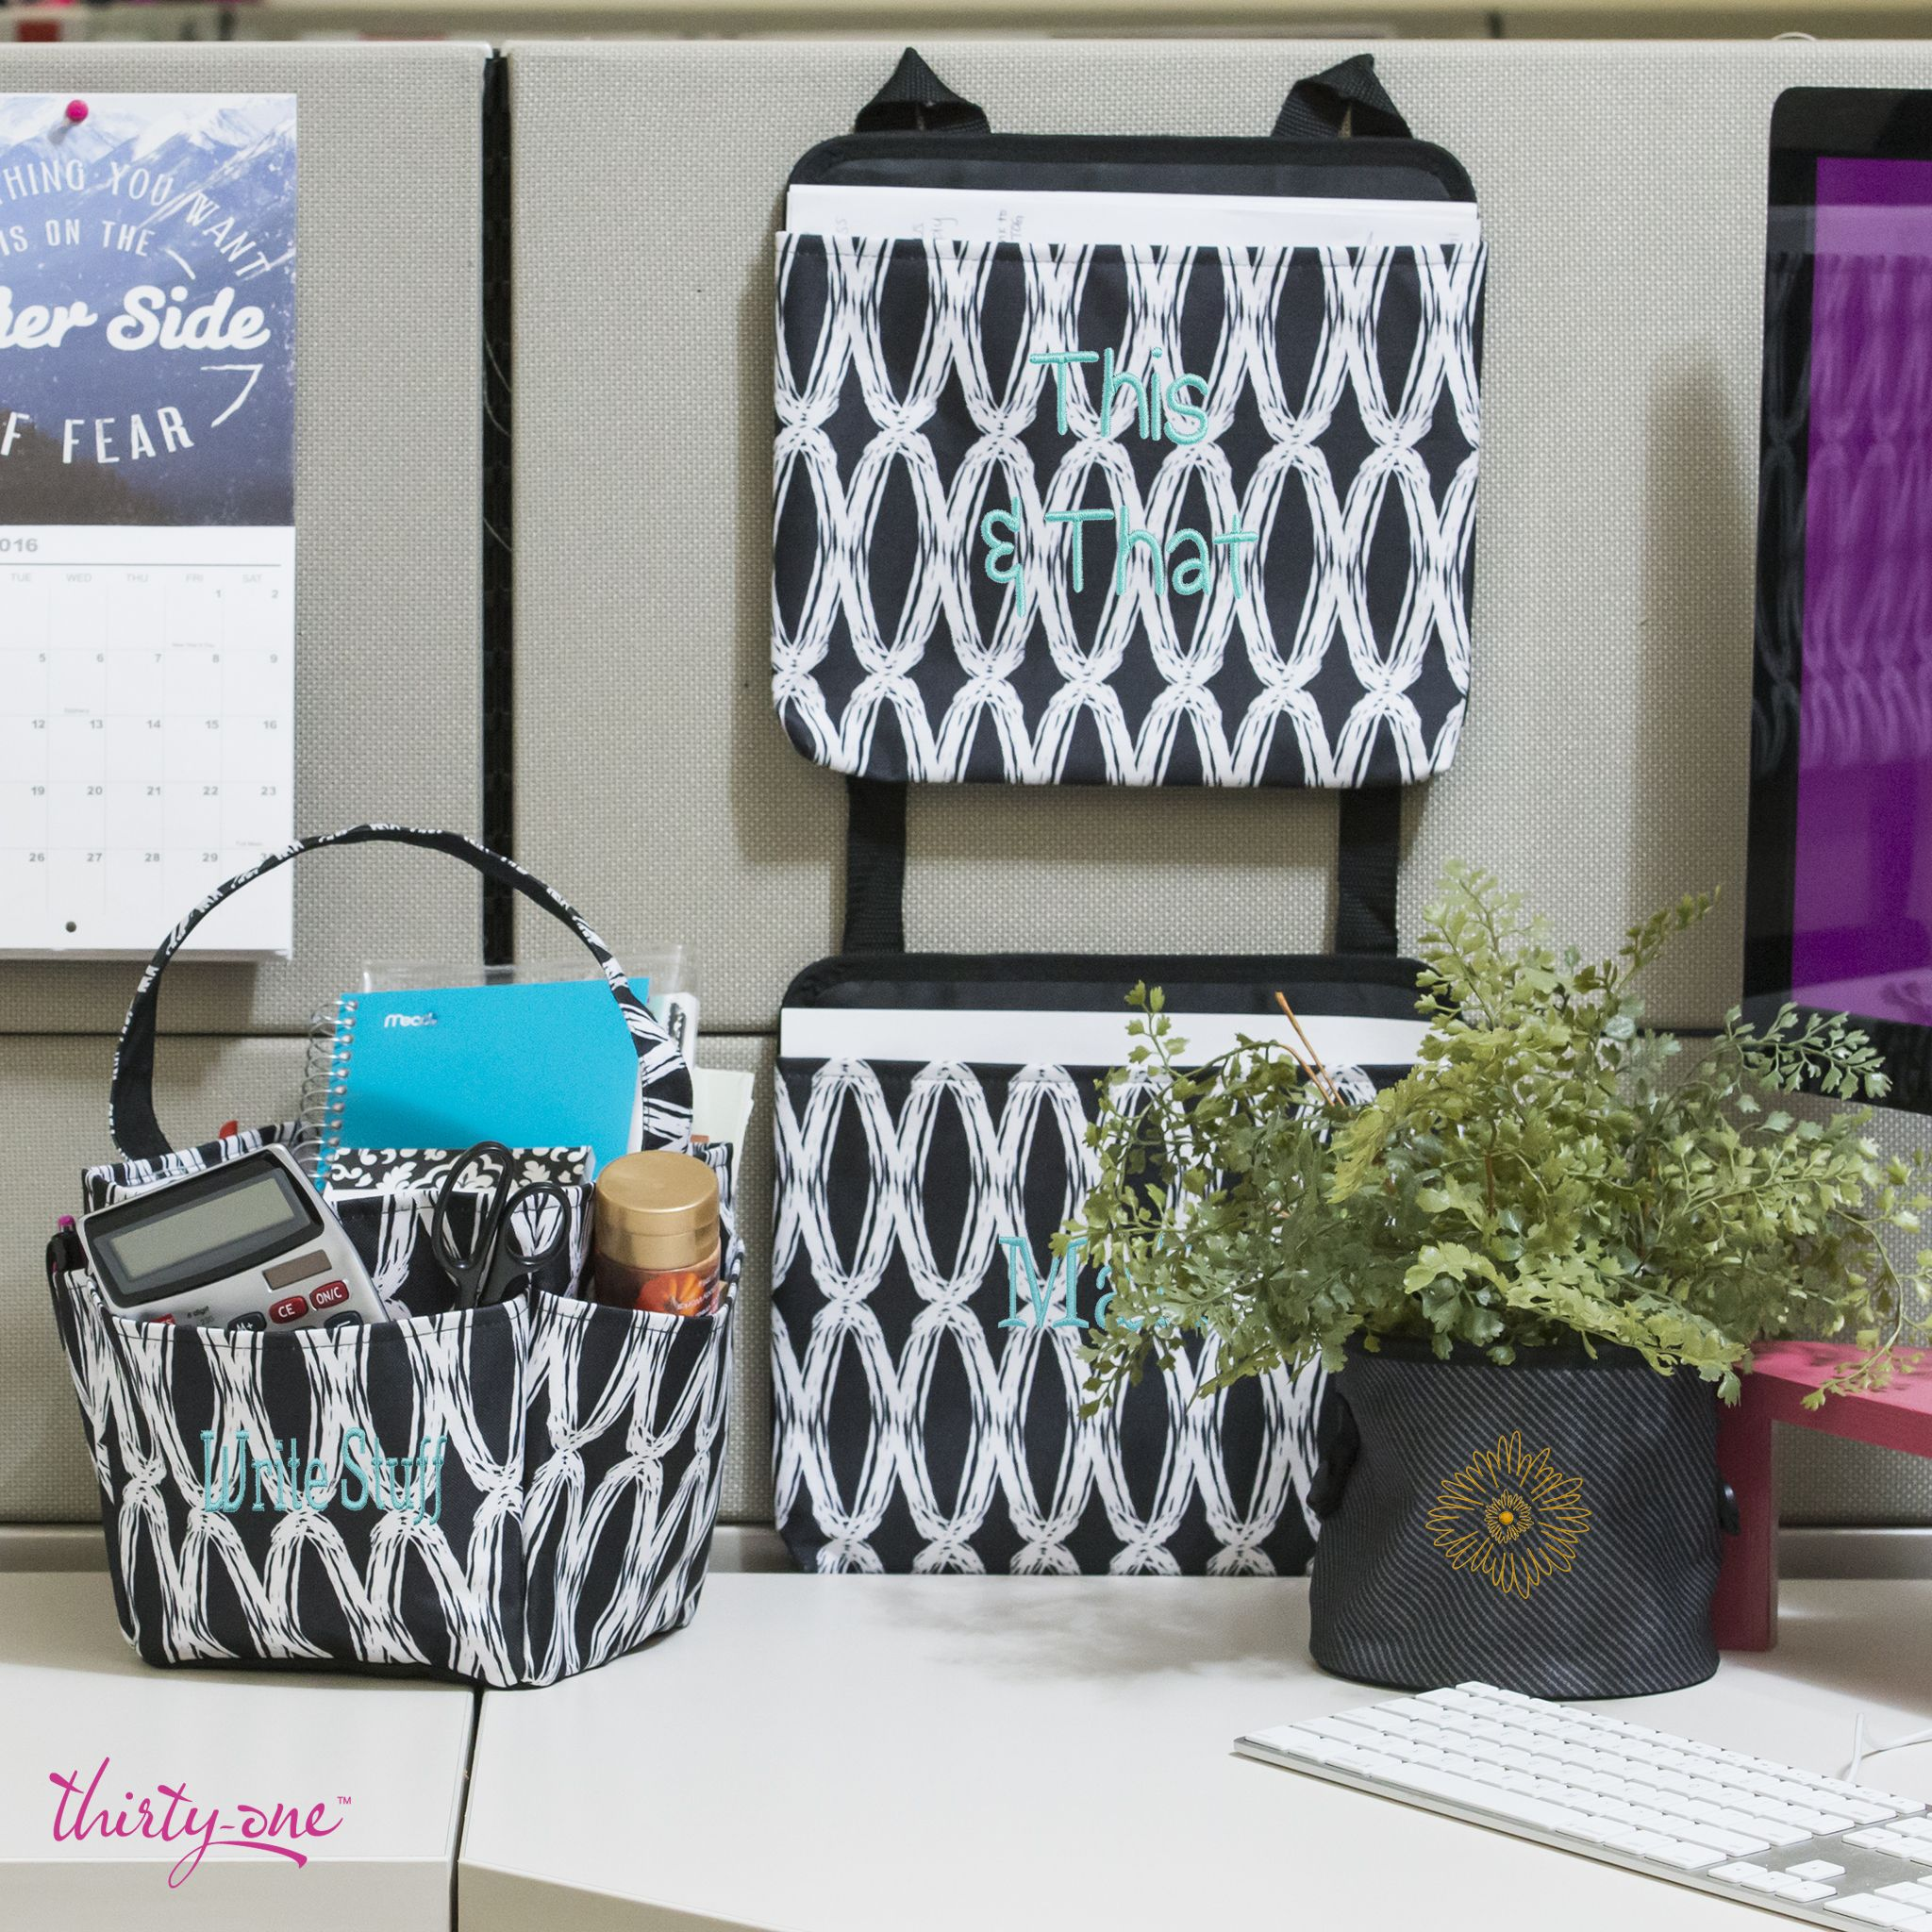 Oh snap bin ideas - Keep Your Office Desk Clear From Clutter With The Creative Caddy Oh Snap Pockets And Oh Snap Bin Shop Online